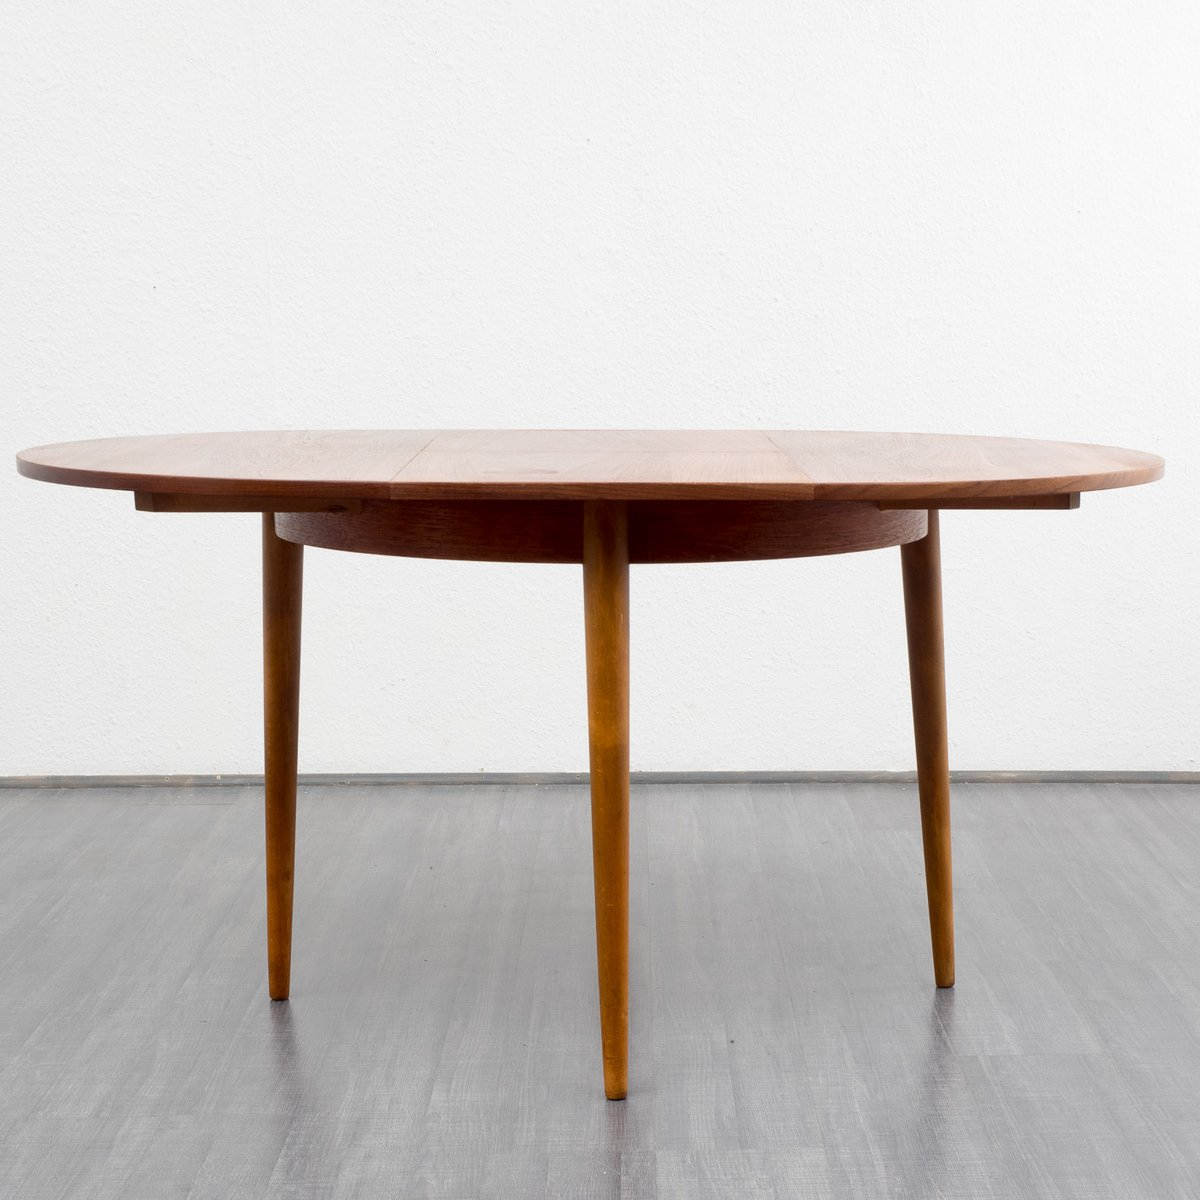 Vintage Round Teak Dining Table 1960s For Sale At Pamono